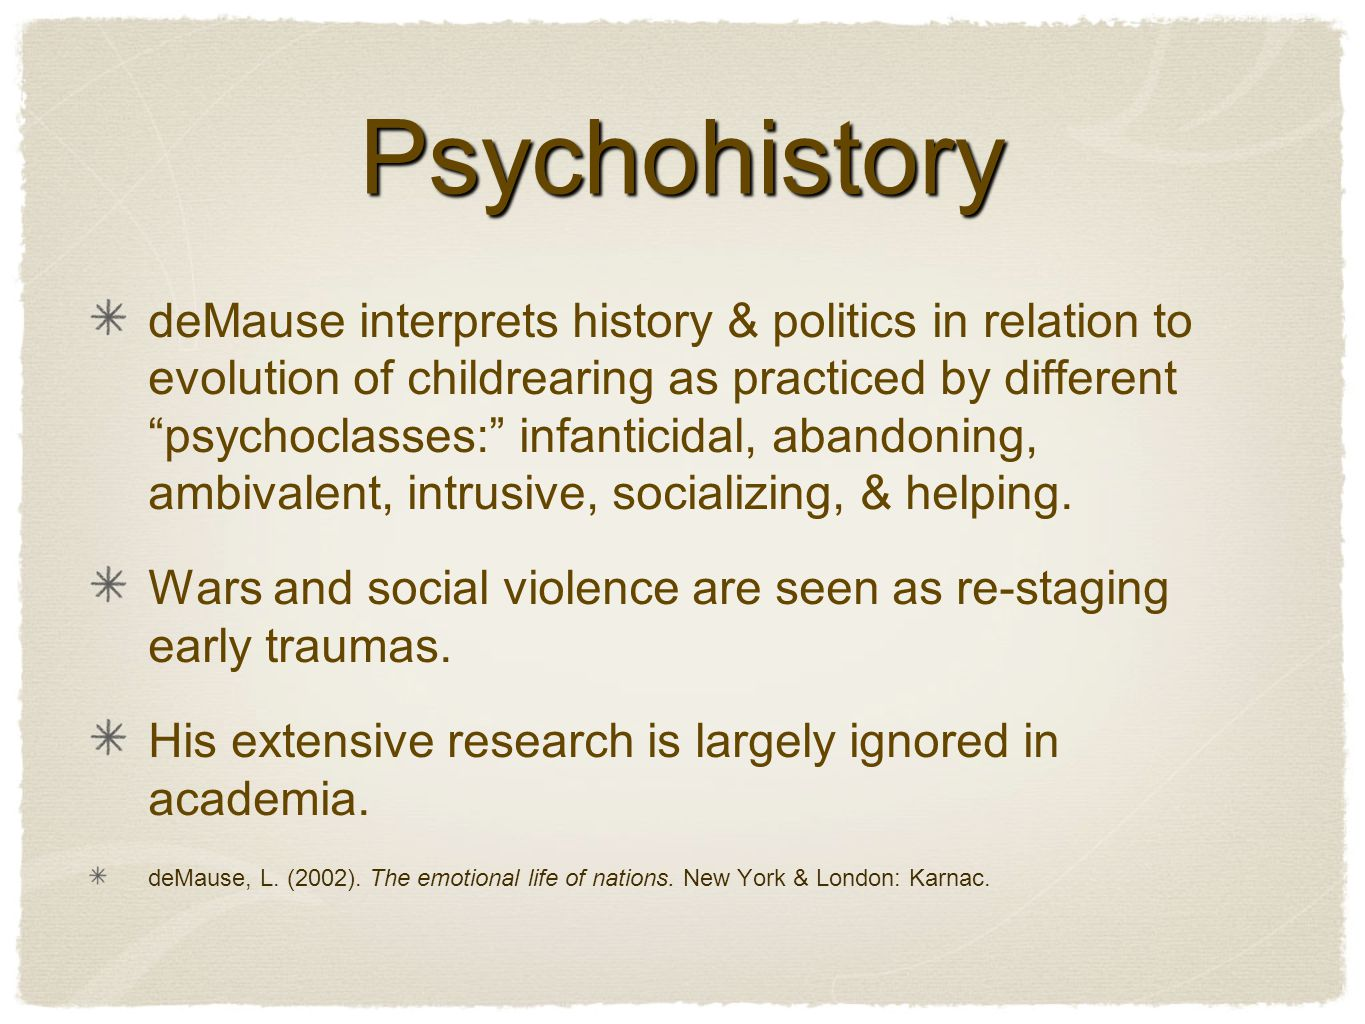 Psychohistory deMause interprets history & politics in relation to evolution of childrearing as practiced by different psychoclasses: infanticidal, abandoning, ambivalent, intrusive, socializing, & helping.